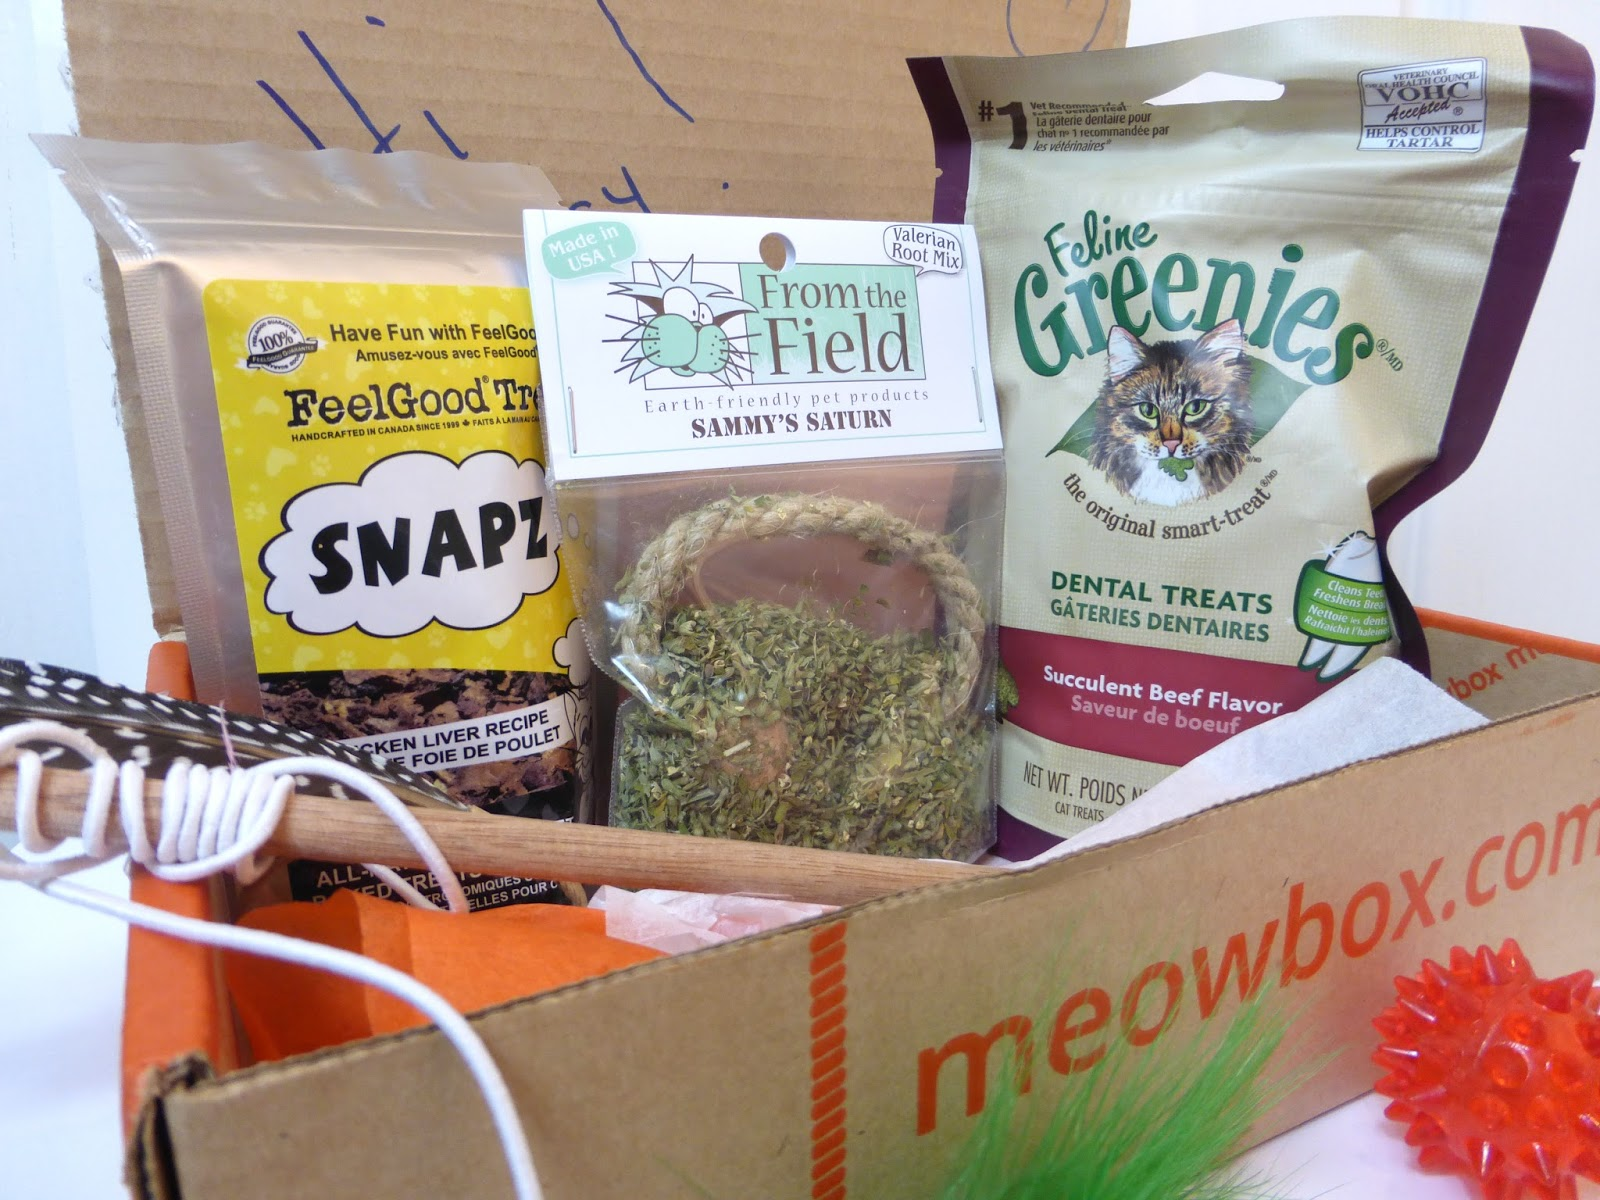 Meowbox - The Original Subscription Box for Cats!